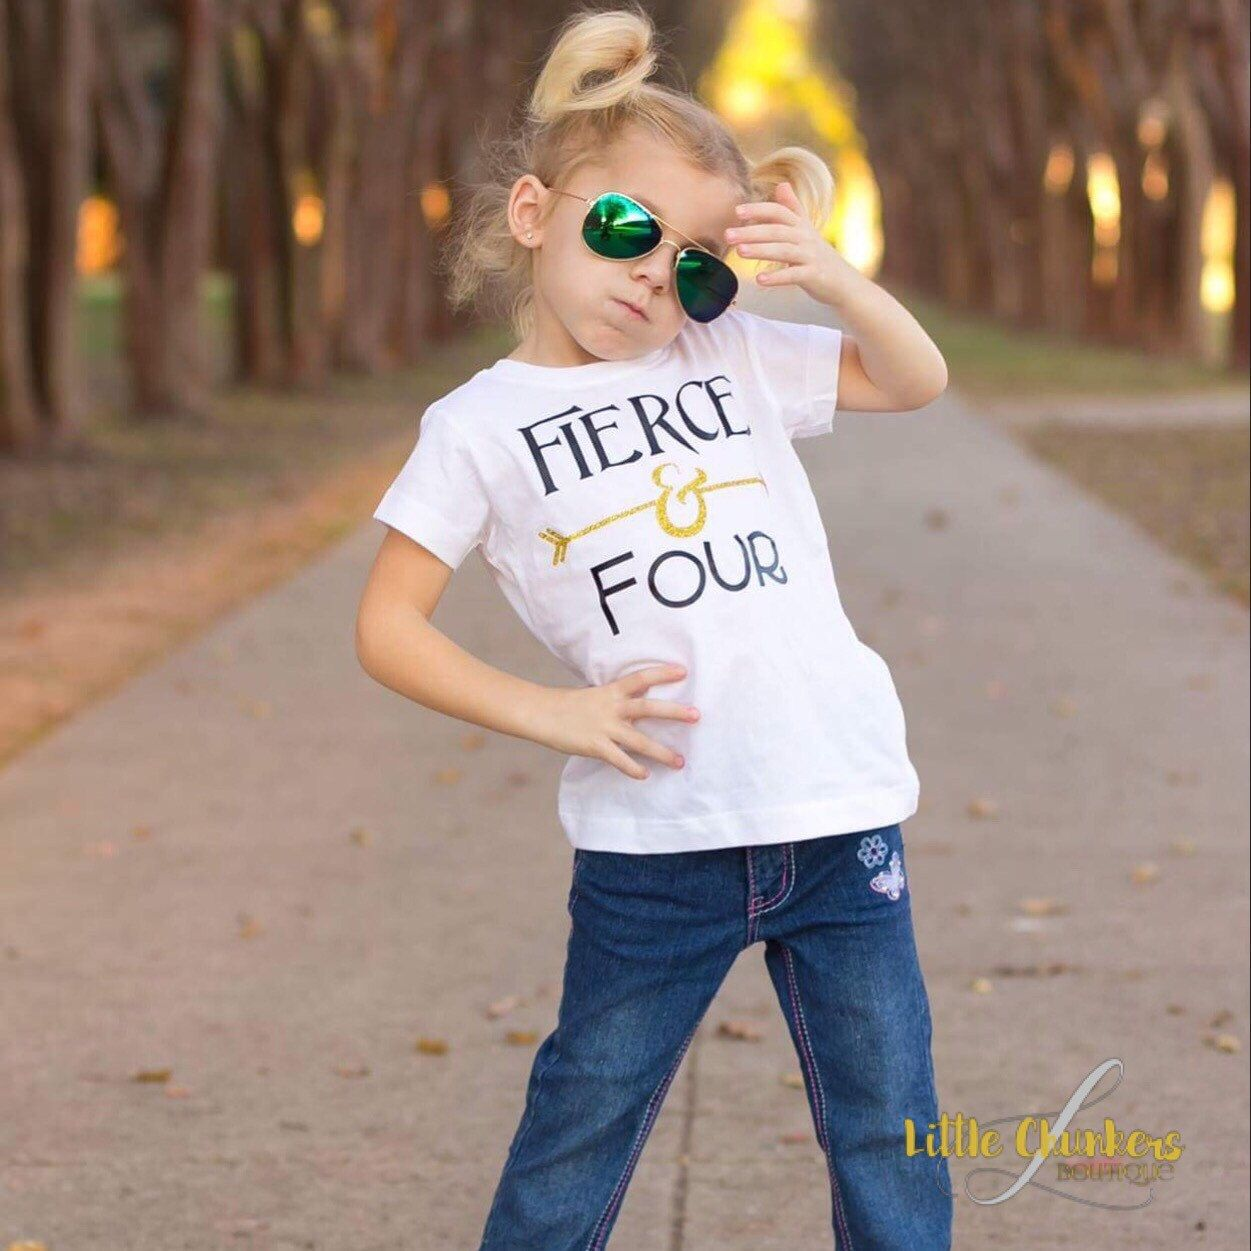 Four Year Old Can Be So Fierce Show Your Childs Spirit With This Cute Top Great For Boys And Girls